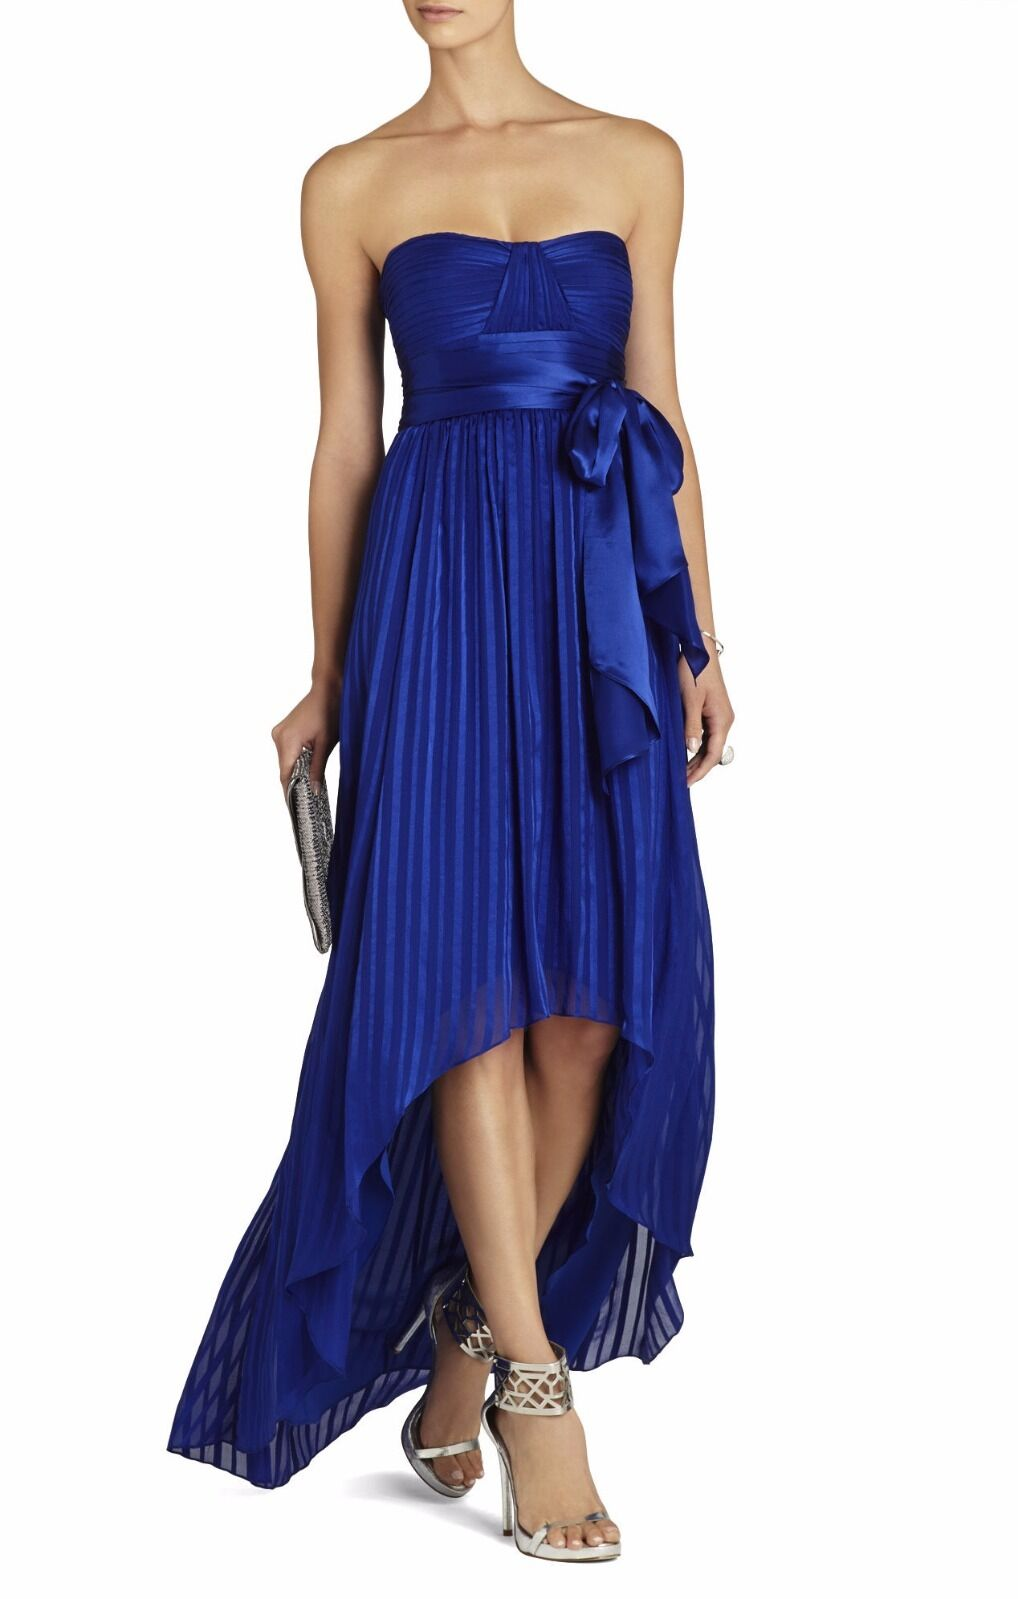 Women's Royal bluee Dress BCBG Size 6 US, 8-10, M